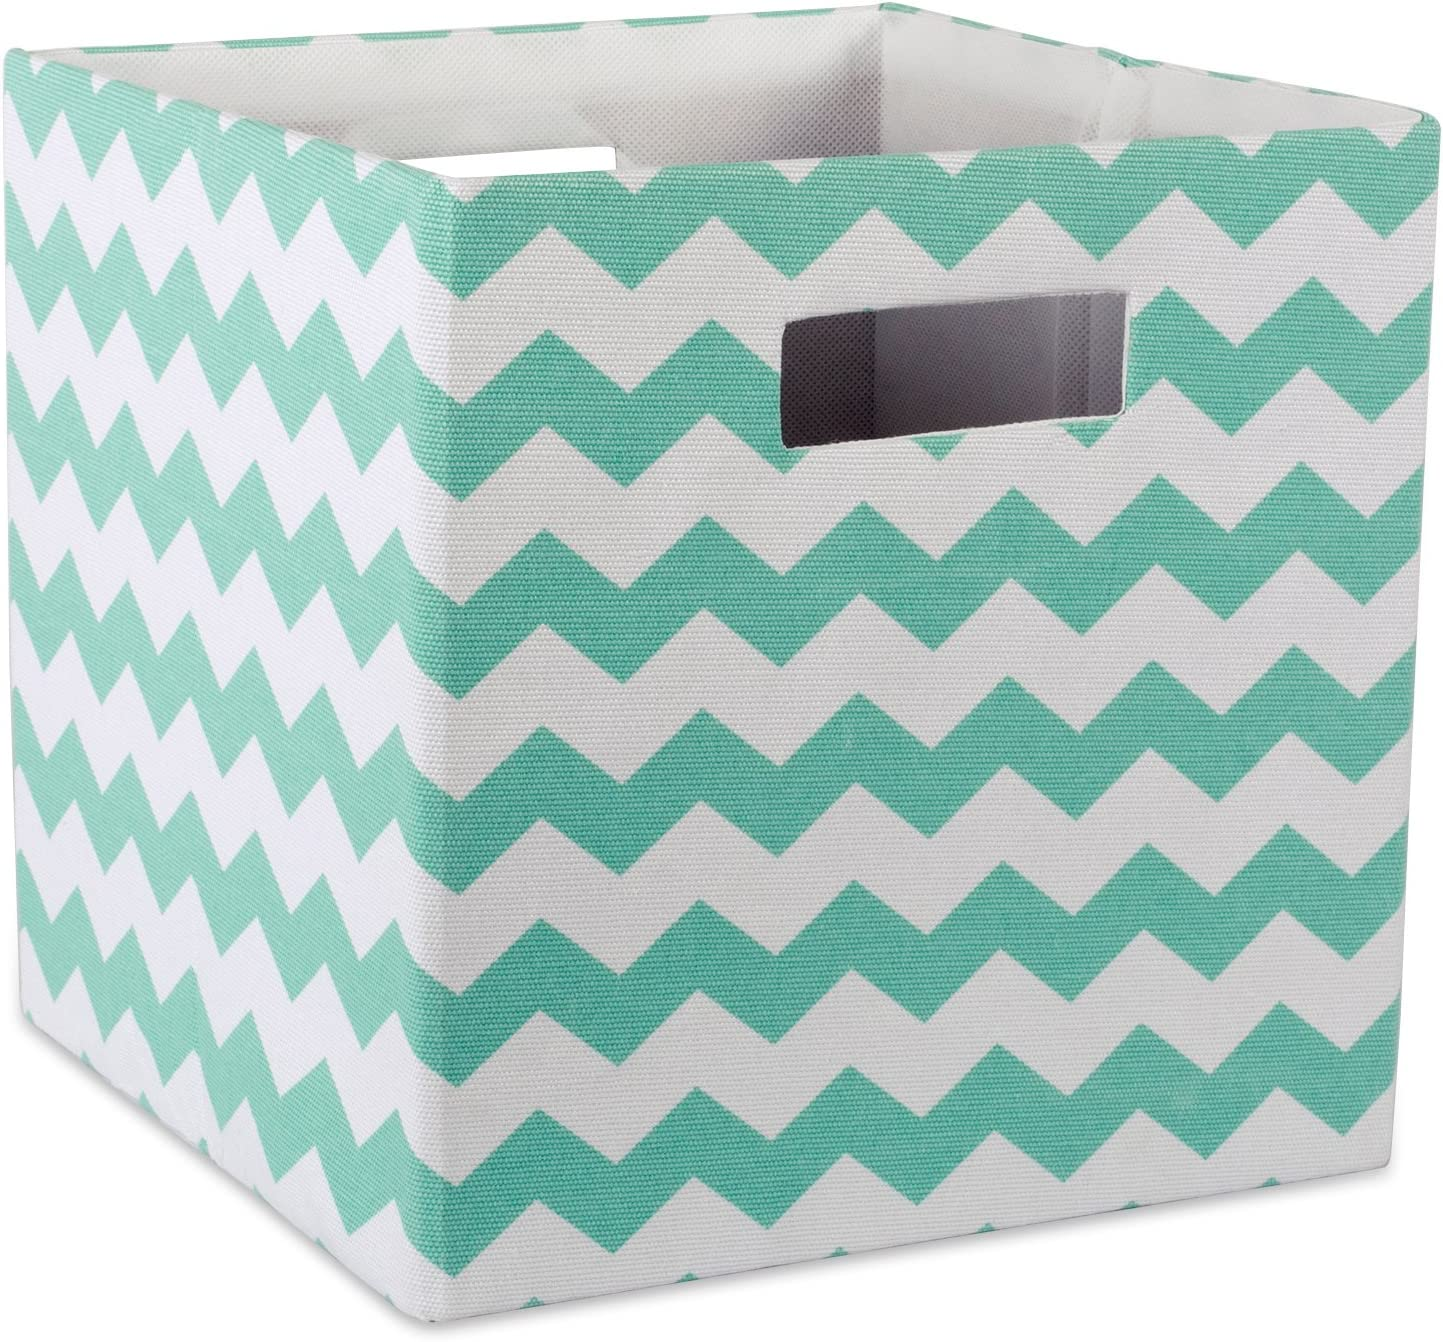 "DII Hard Sided Collapsible Fabric Storage Container for Nursery, Offices, & Home Organization, (11x11x11"") - Chevron Aqua"